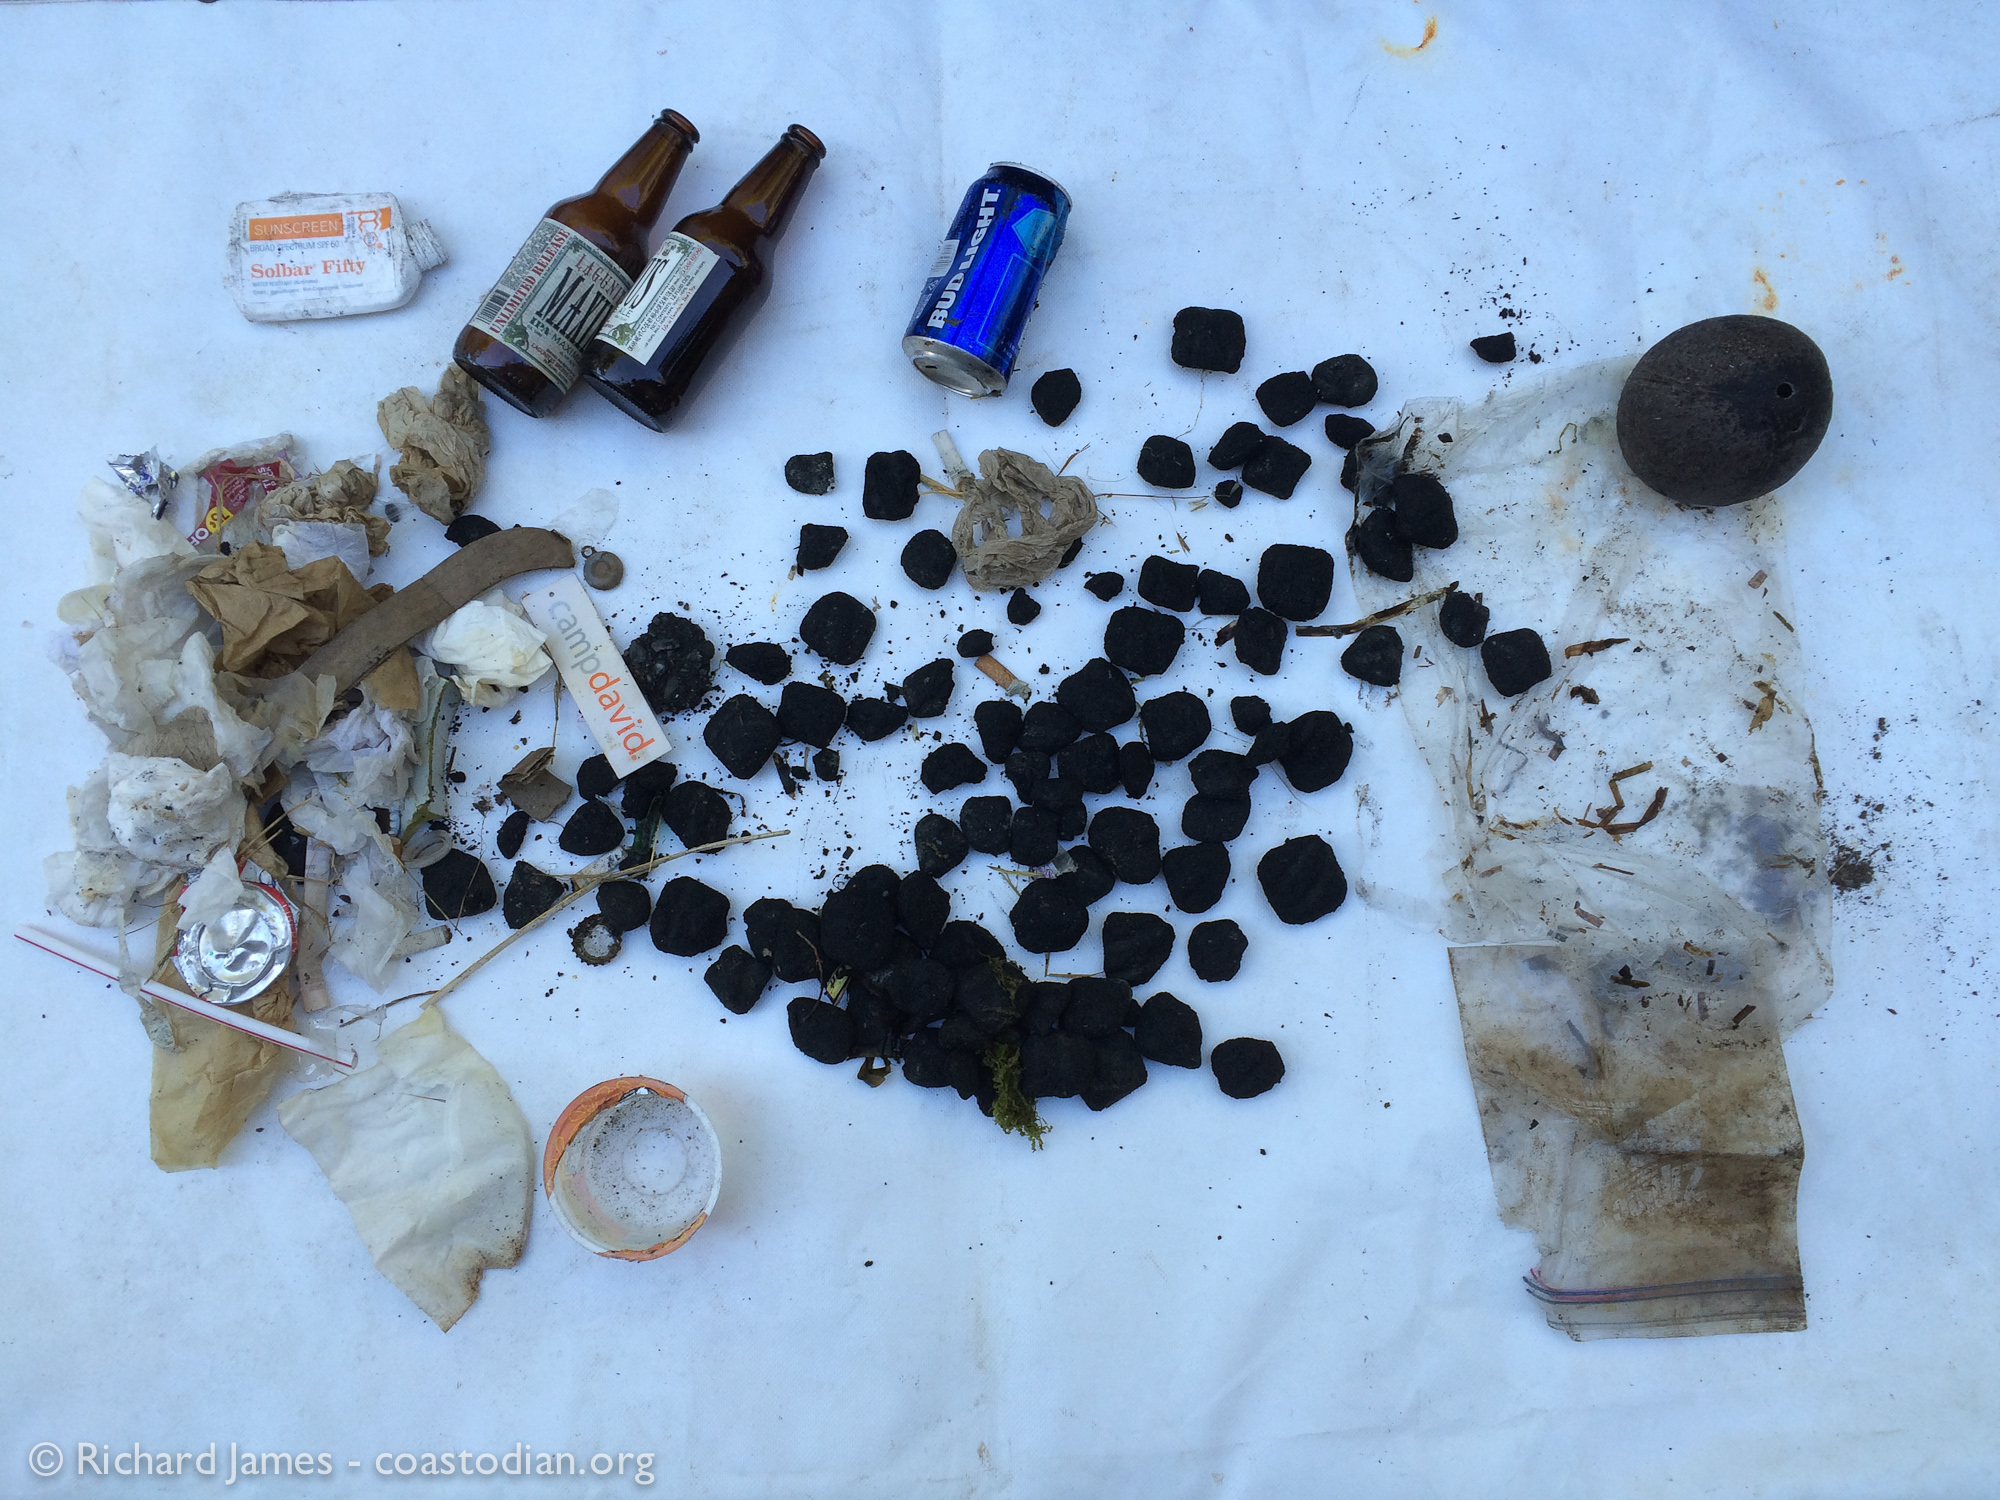 This pile of BBQ briquettes, napkins, toilet paper, beer bottles, gloves and other trash was pulled out of Tomales Bay at Grassy Point on the eastern shore on 13 August, 2016